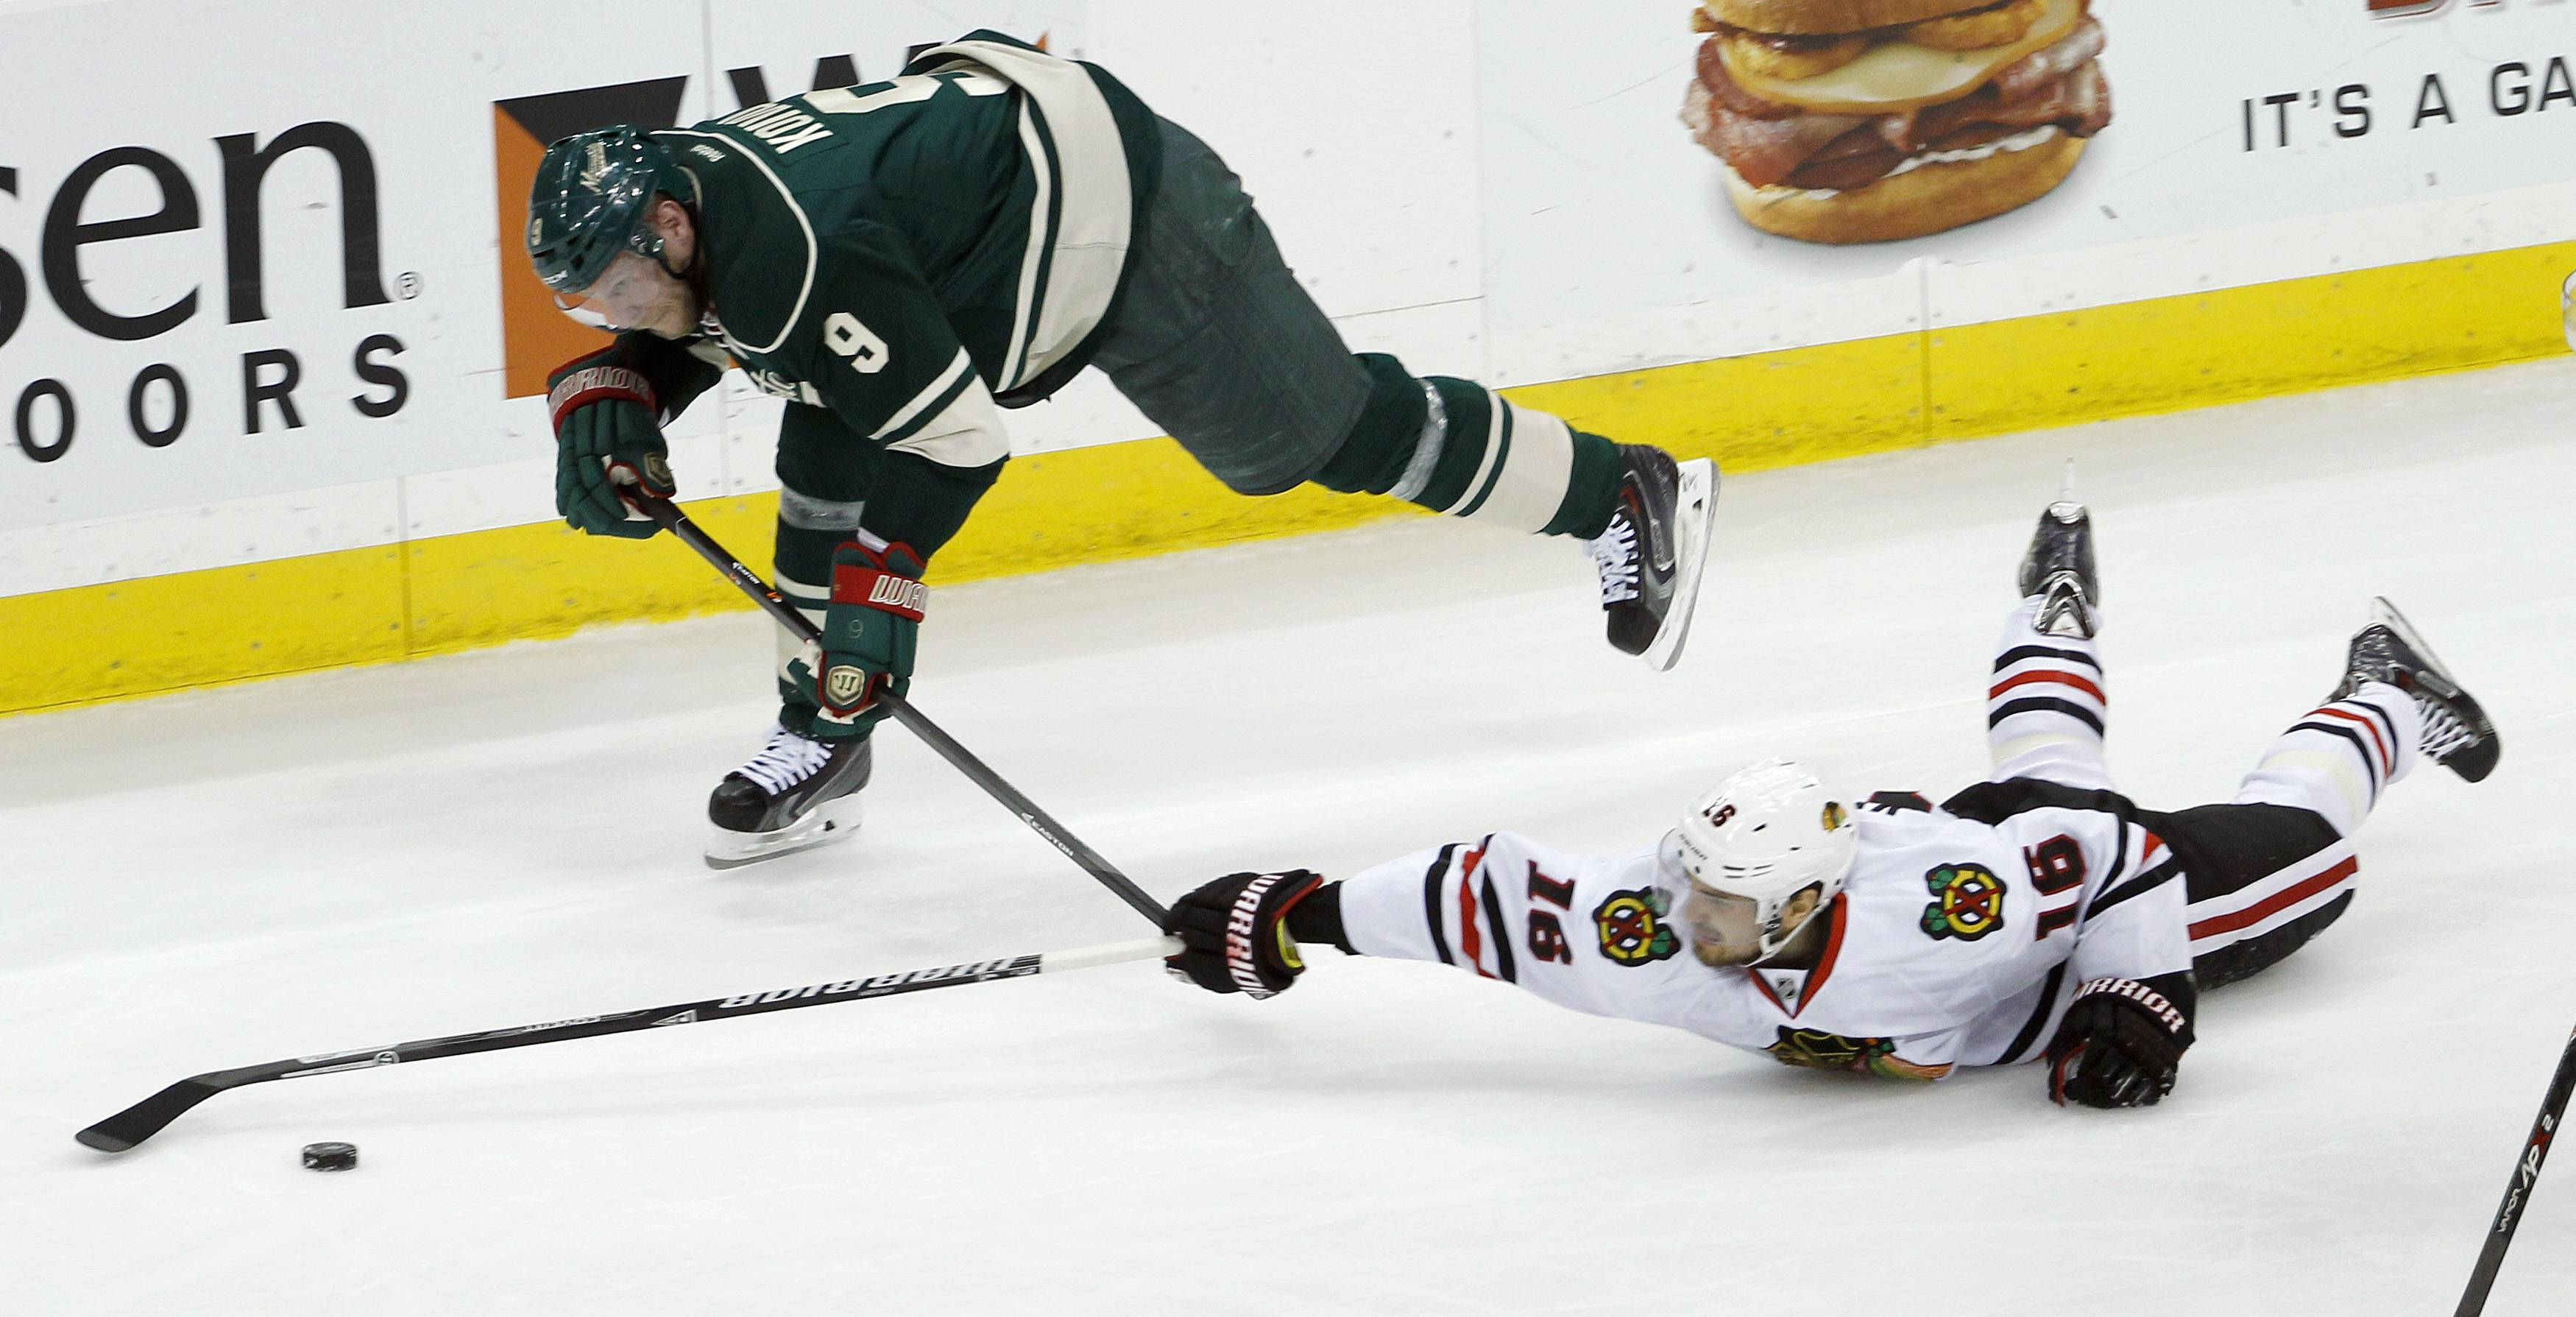 Minnesota Wild center Mikko Koivu (9), of Finland, and Chicago Blackhawks center Marcus Kruger (16), of Sweden, chase the puck during the first period.